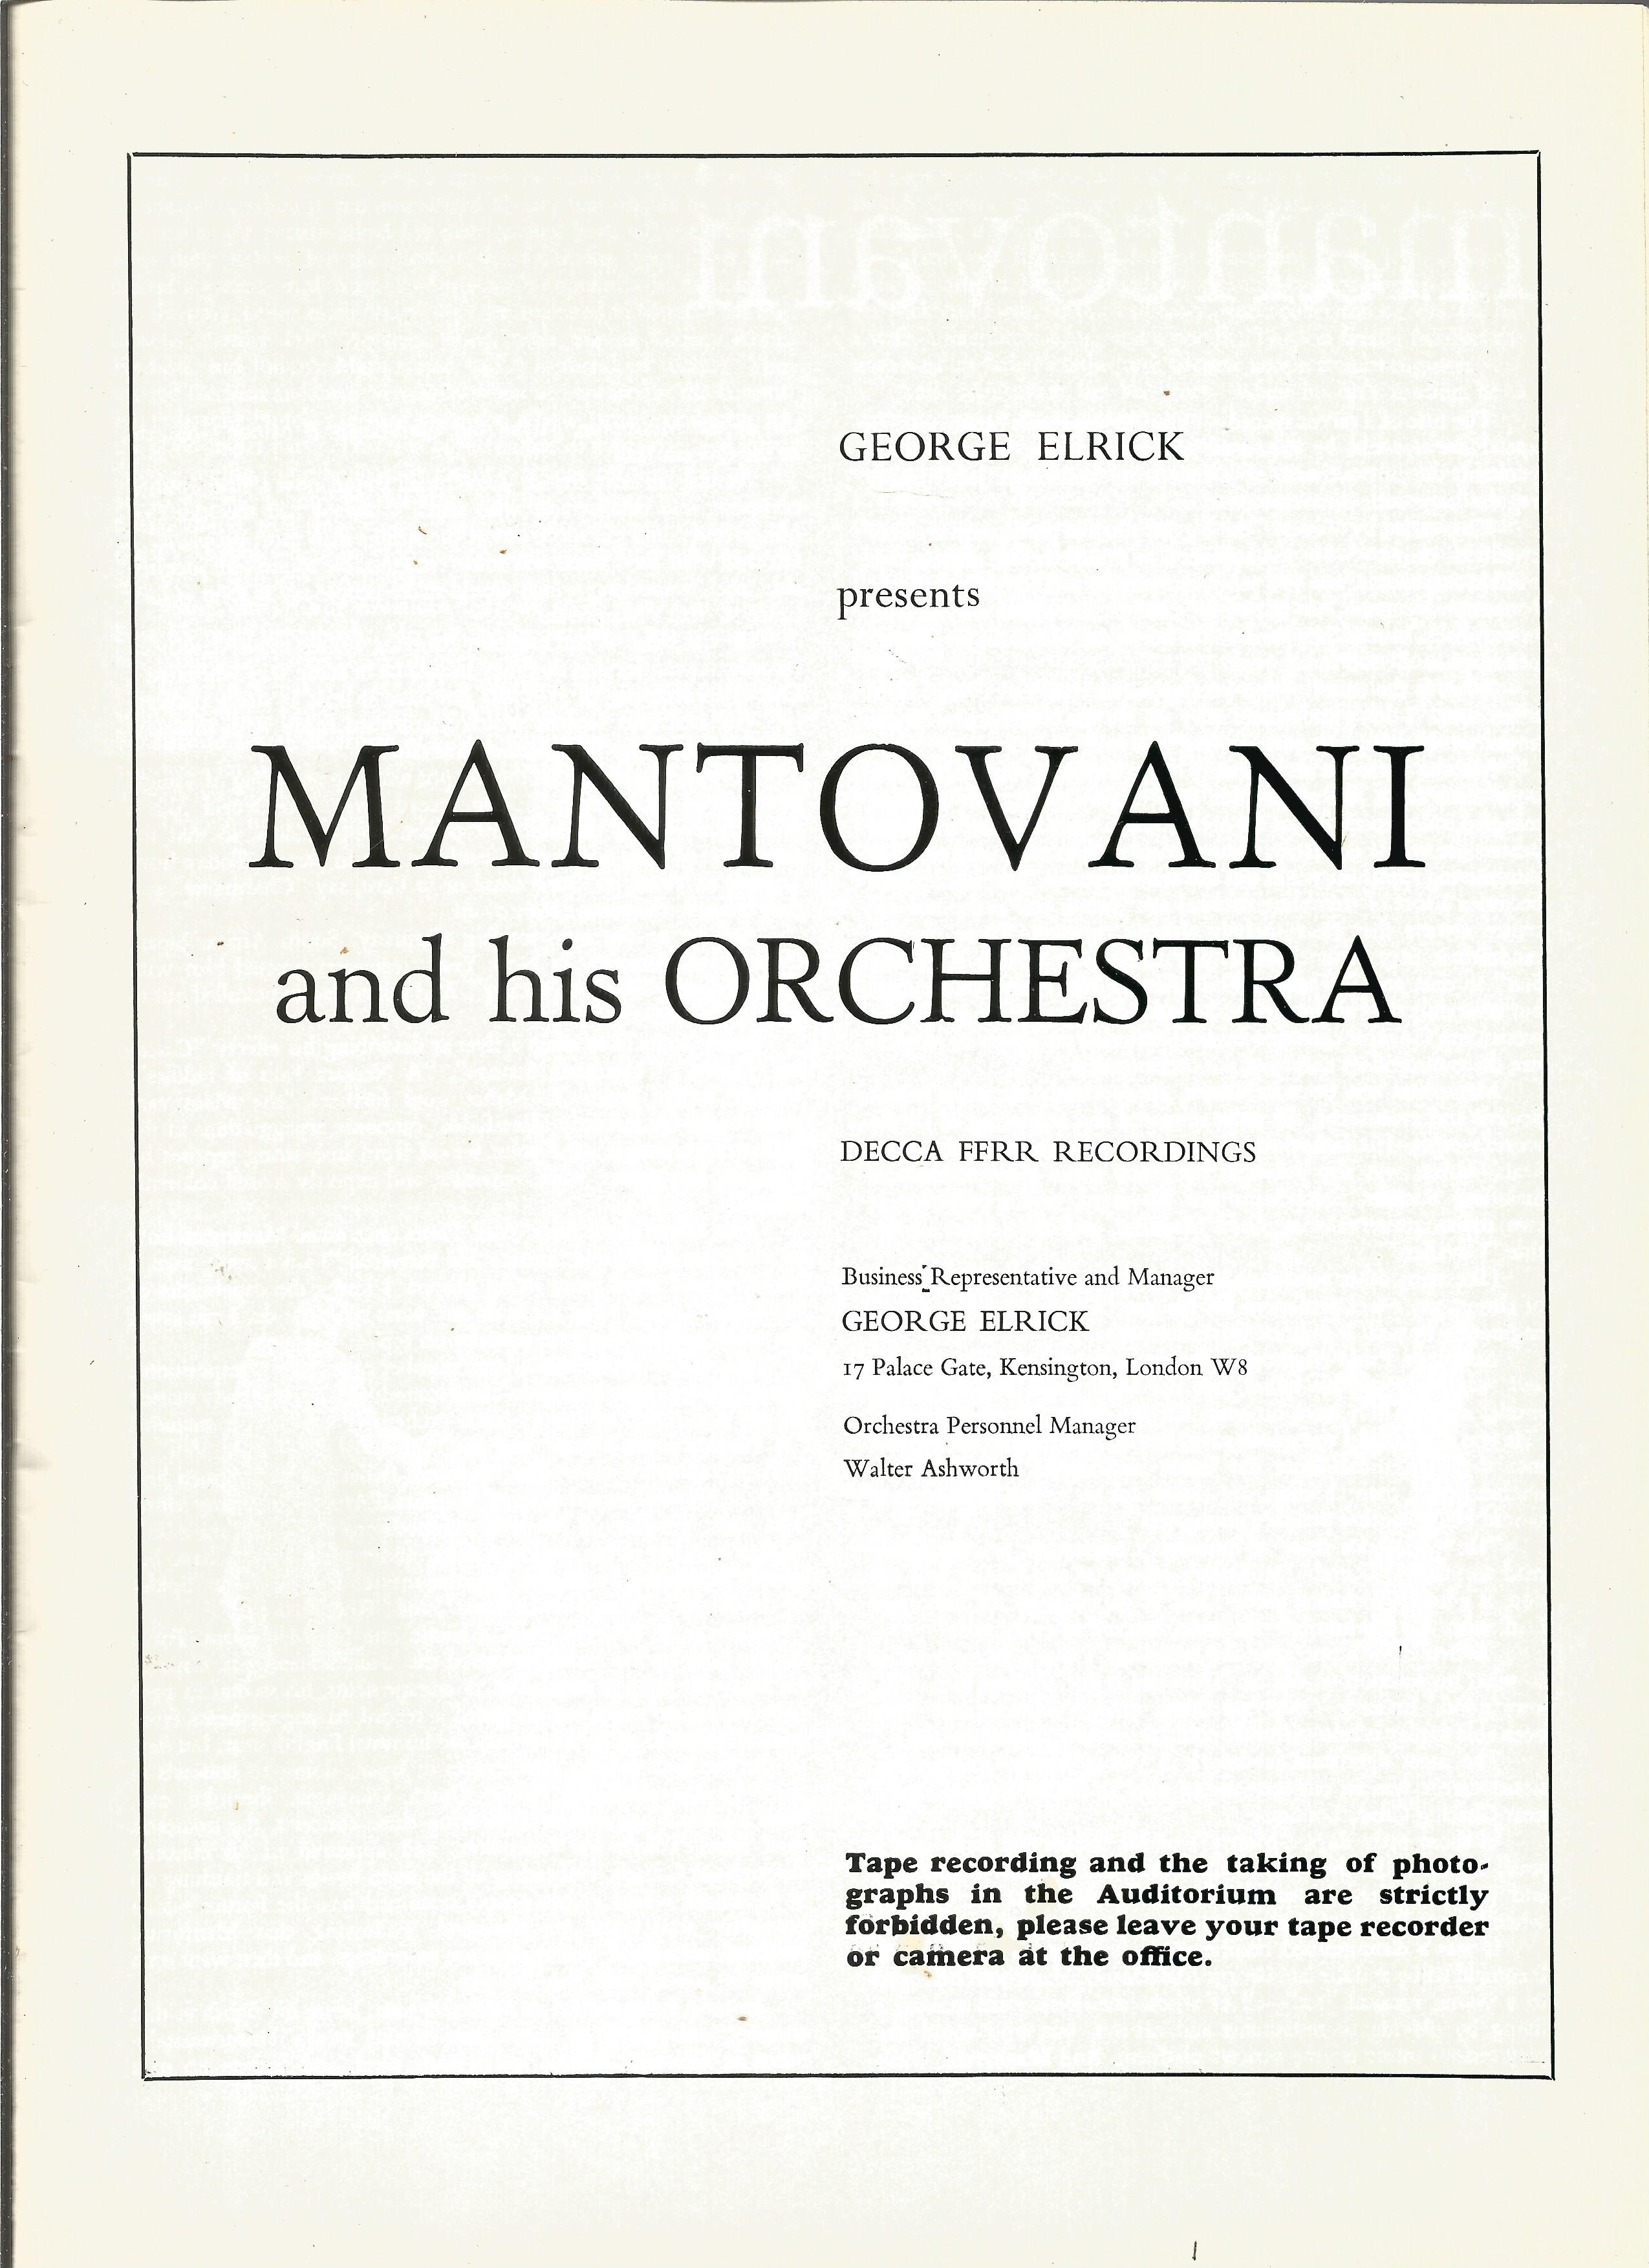 Signed Mantovani In House Brochure 1969 from a performance at Eastbourne Ticket stubs & Decca - Image 3 of 4